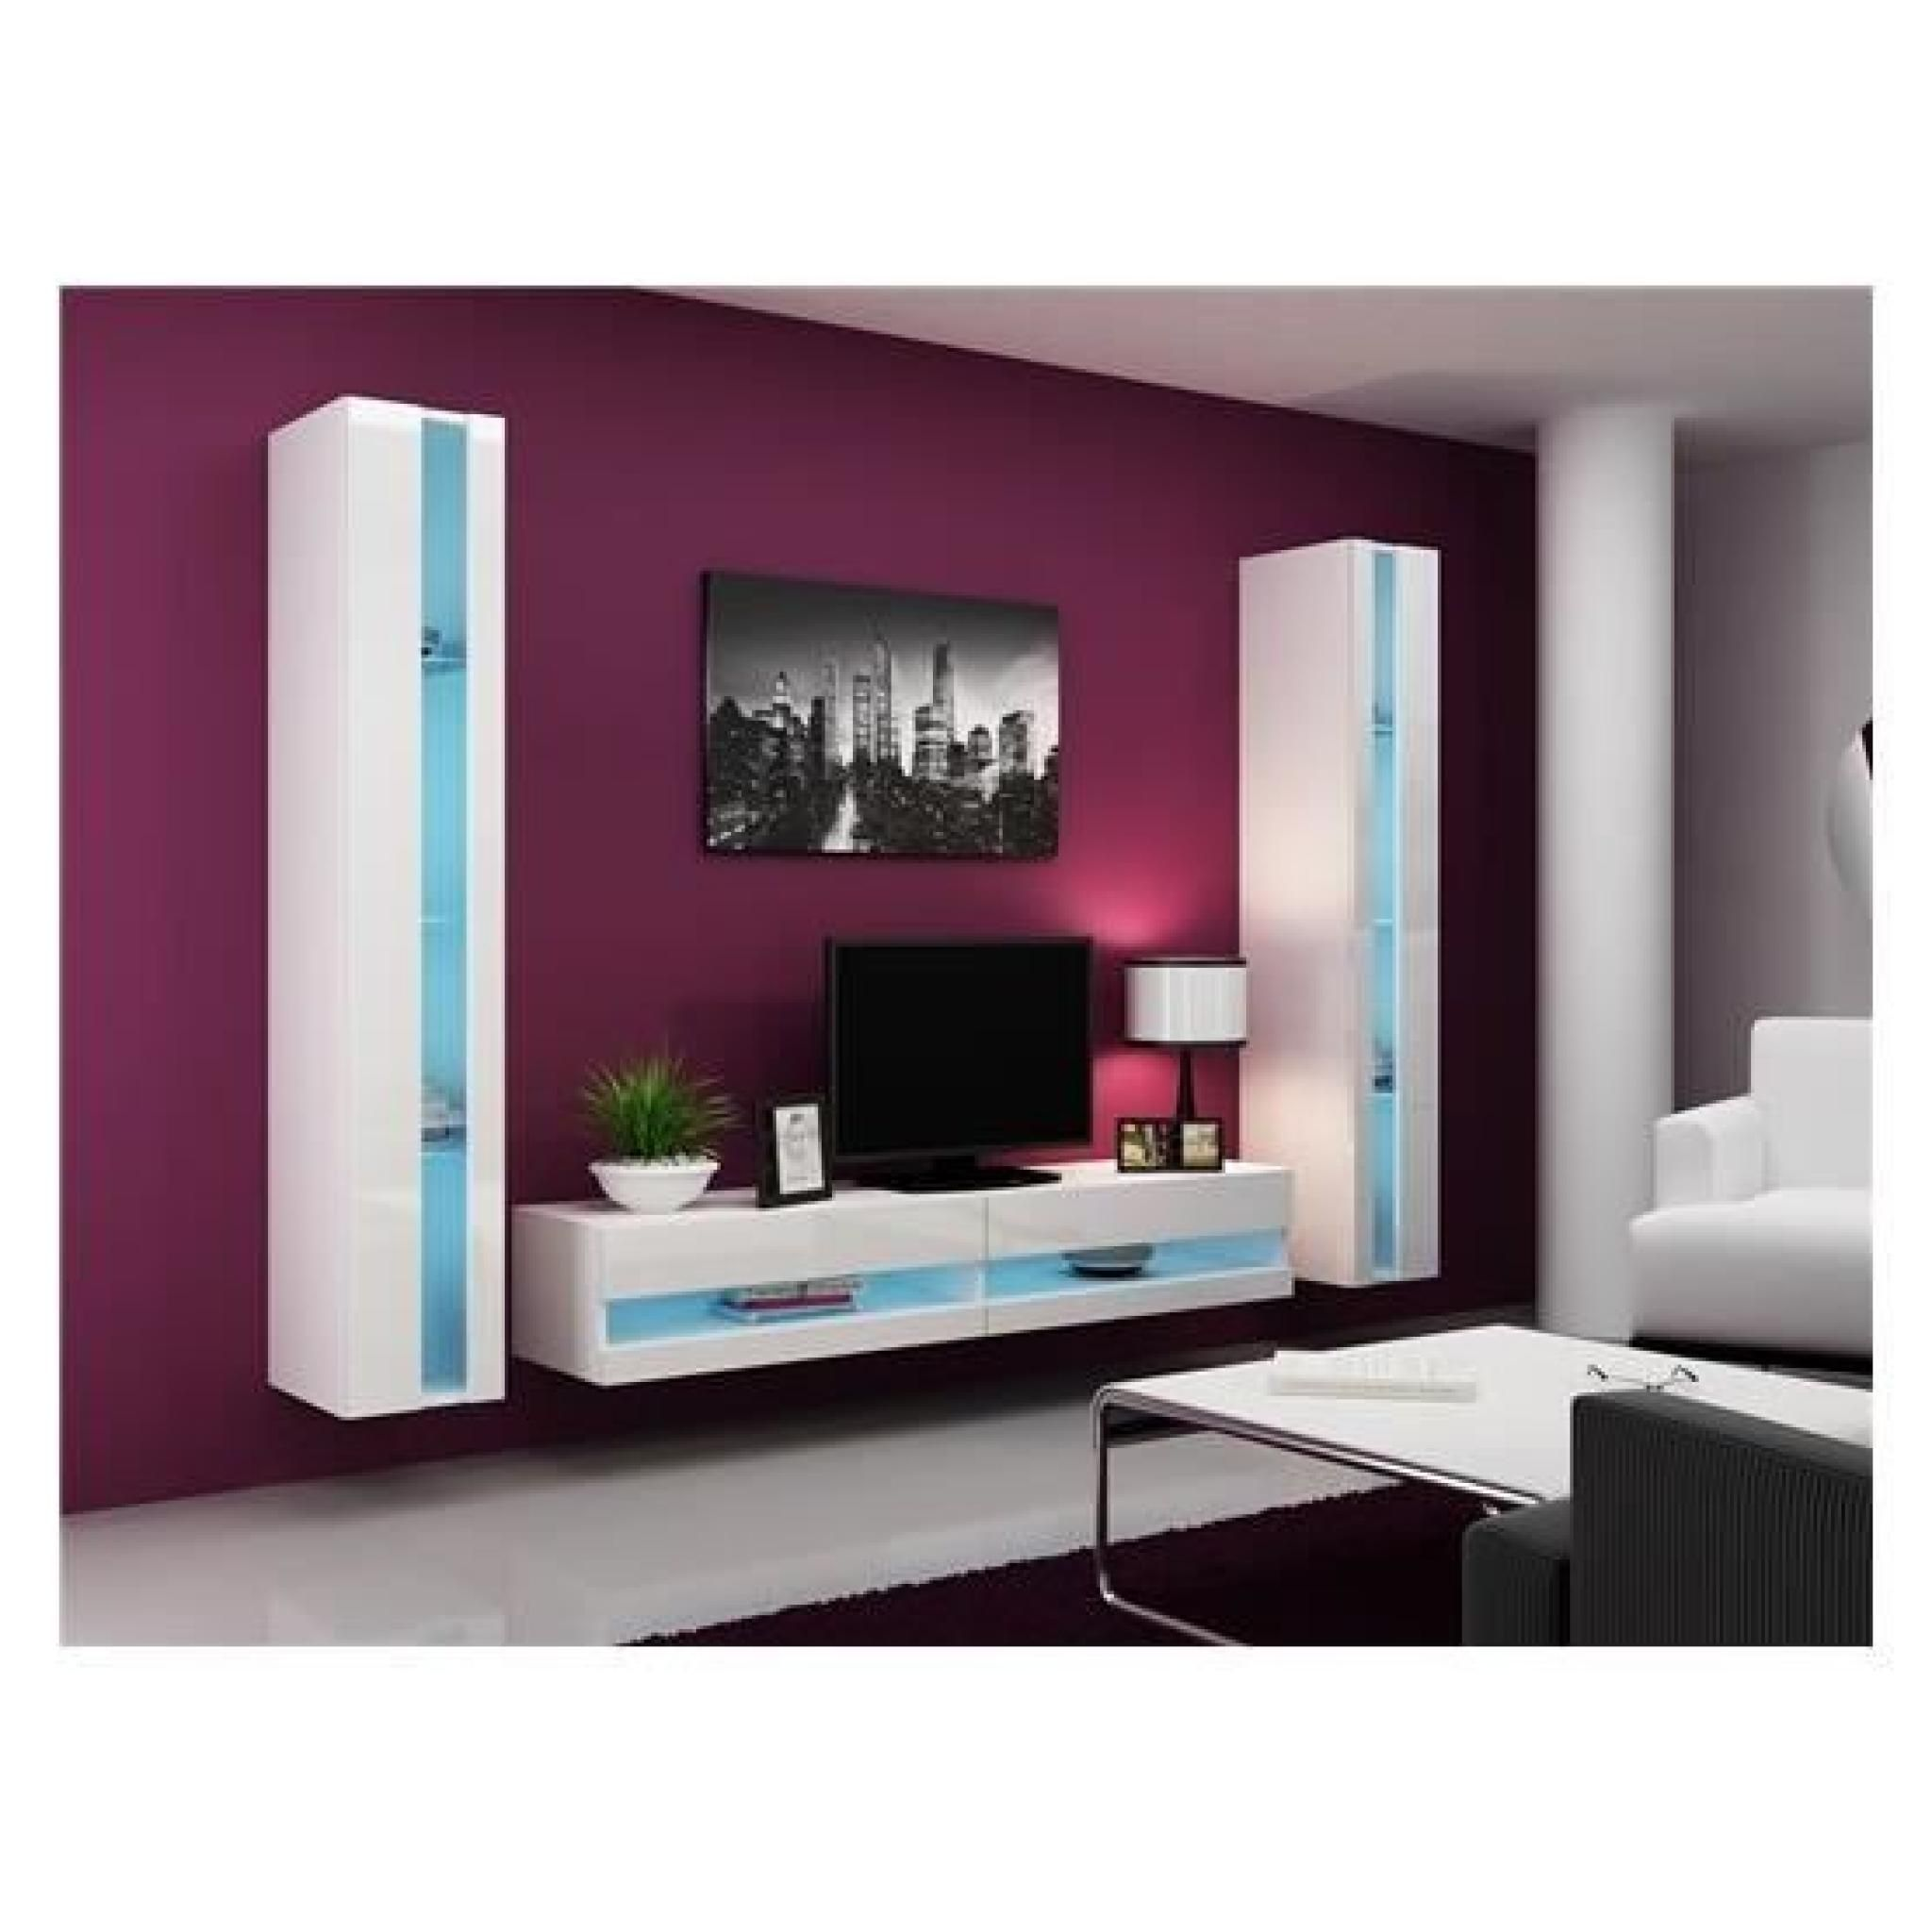 Vente Meuble Tv - Redoutable Meuble Tv Pas Cher D Coration Fran Aise Pinterest [mjhdah]http://www.beerandrail.com/wp-content/uploads/2018/02/c-discount-meuble-tv-awesome-meuble-tv-couleur-chane-clair-contemporain-adriely-achat-vente-of-c-discount-meuble-tv.jpg